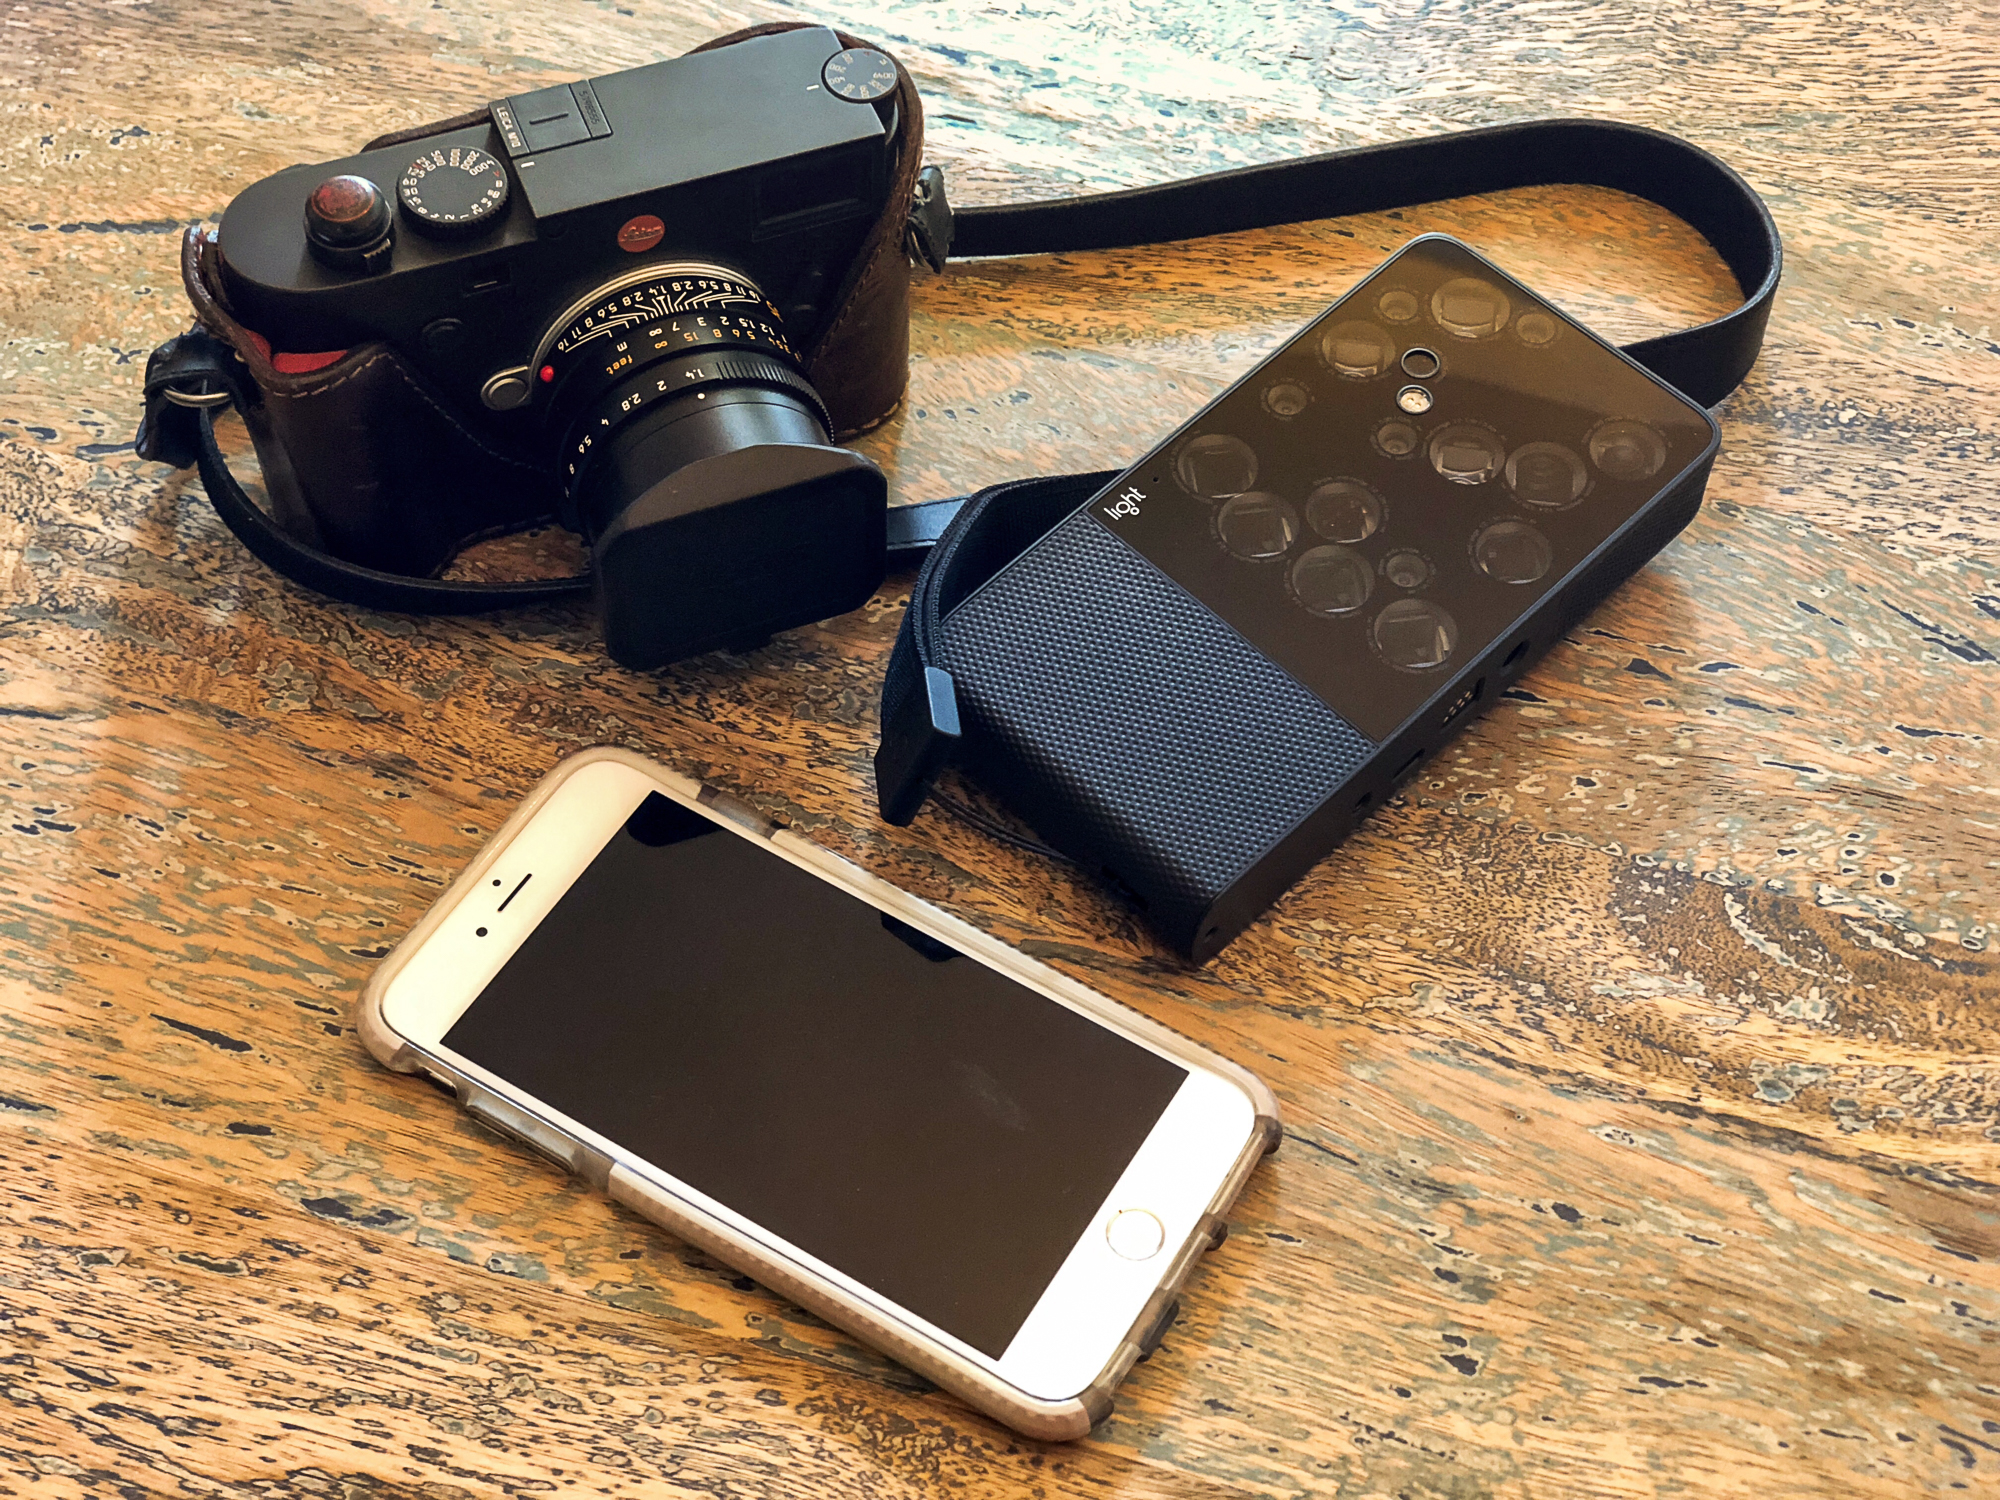 The Light L16 computational camera with 16 lenses,a Leica M10, and an iPhone.